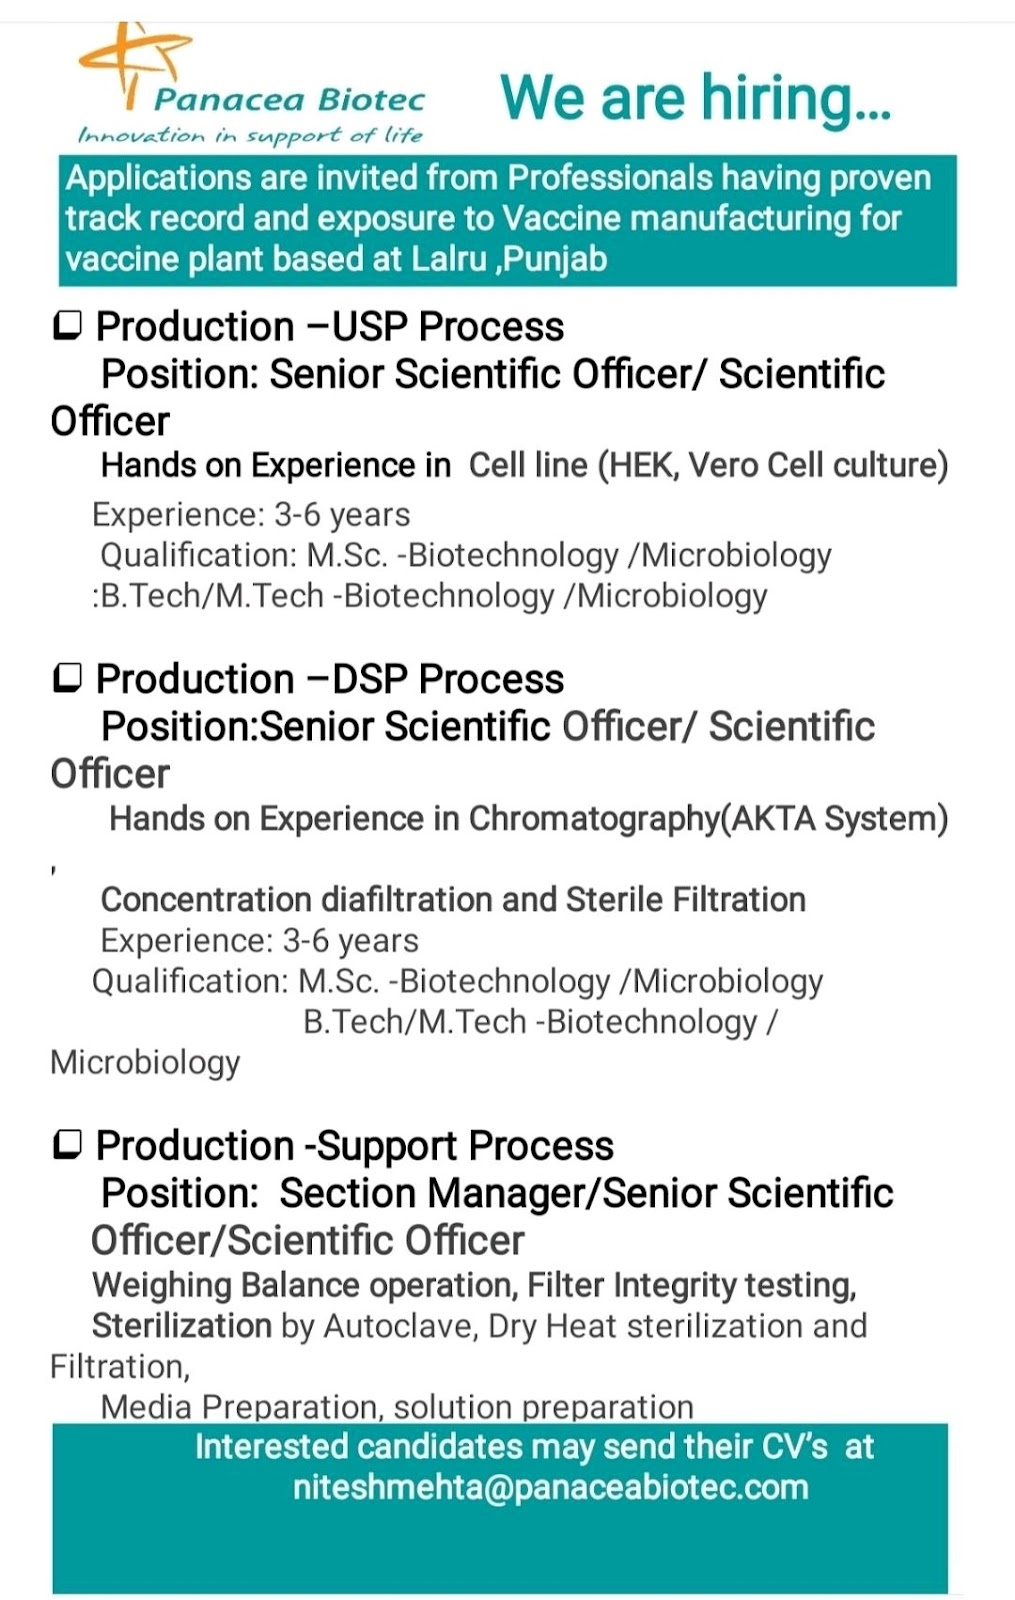 Multiple Opening For Production In Panacea Biotech